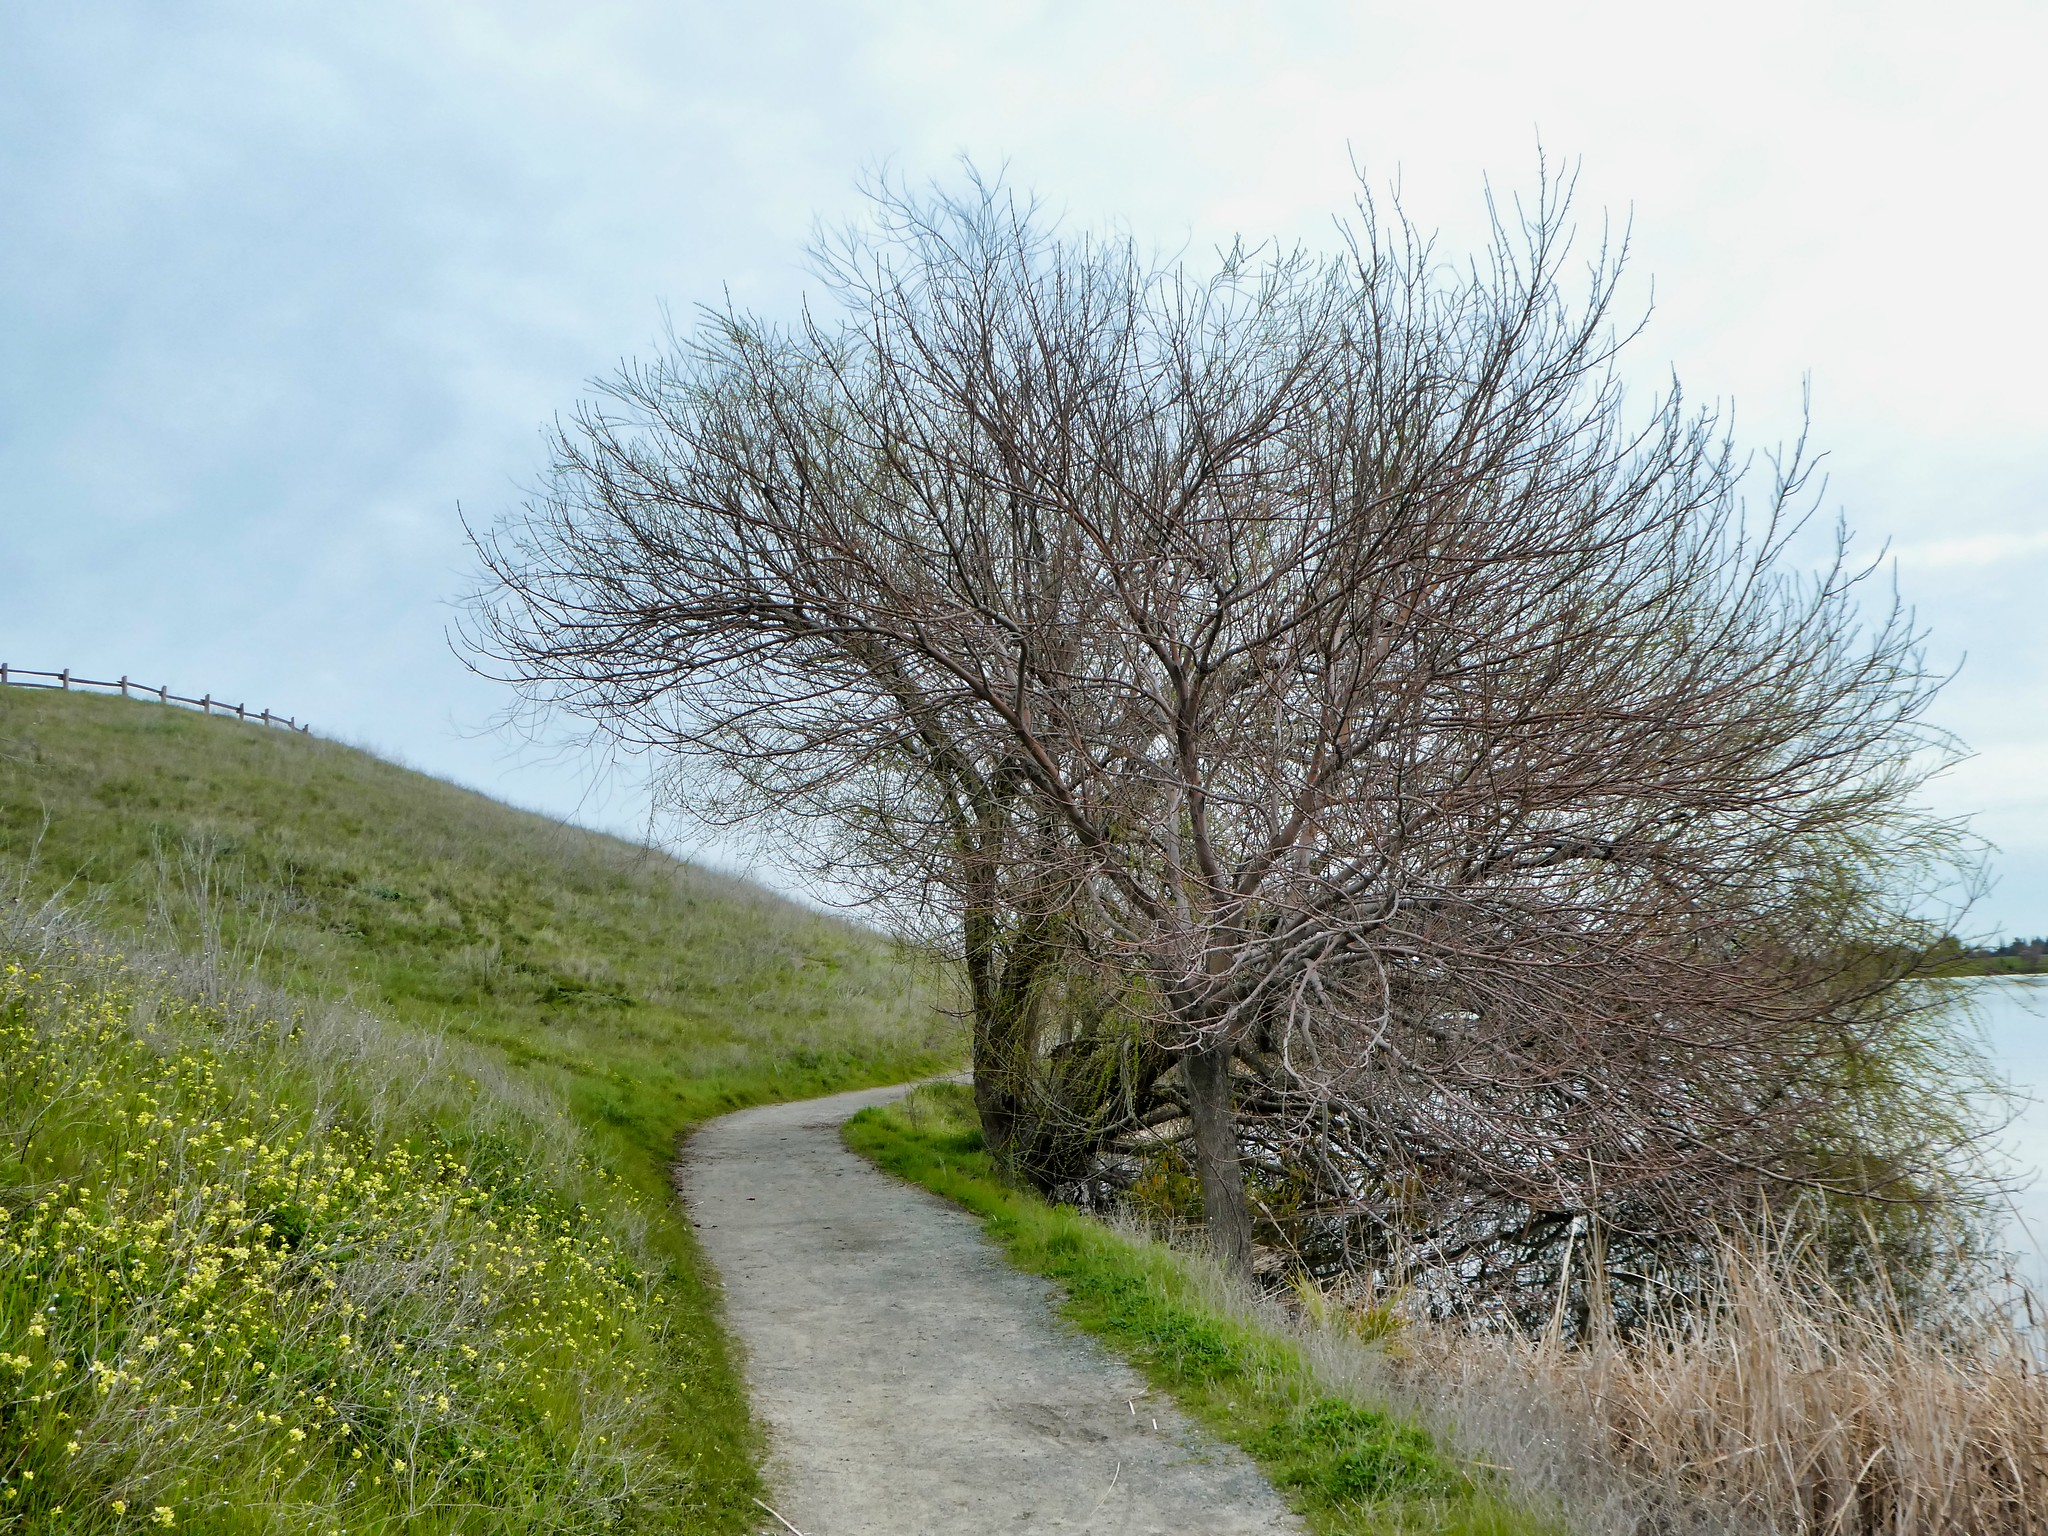 2019-02-24 - Nature Photography - Morning Walk at Contra Loma Regional Park